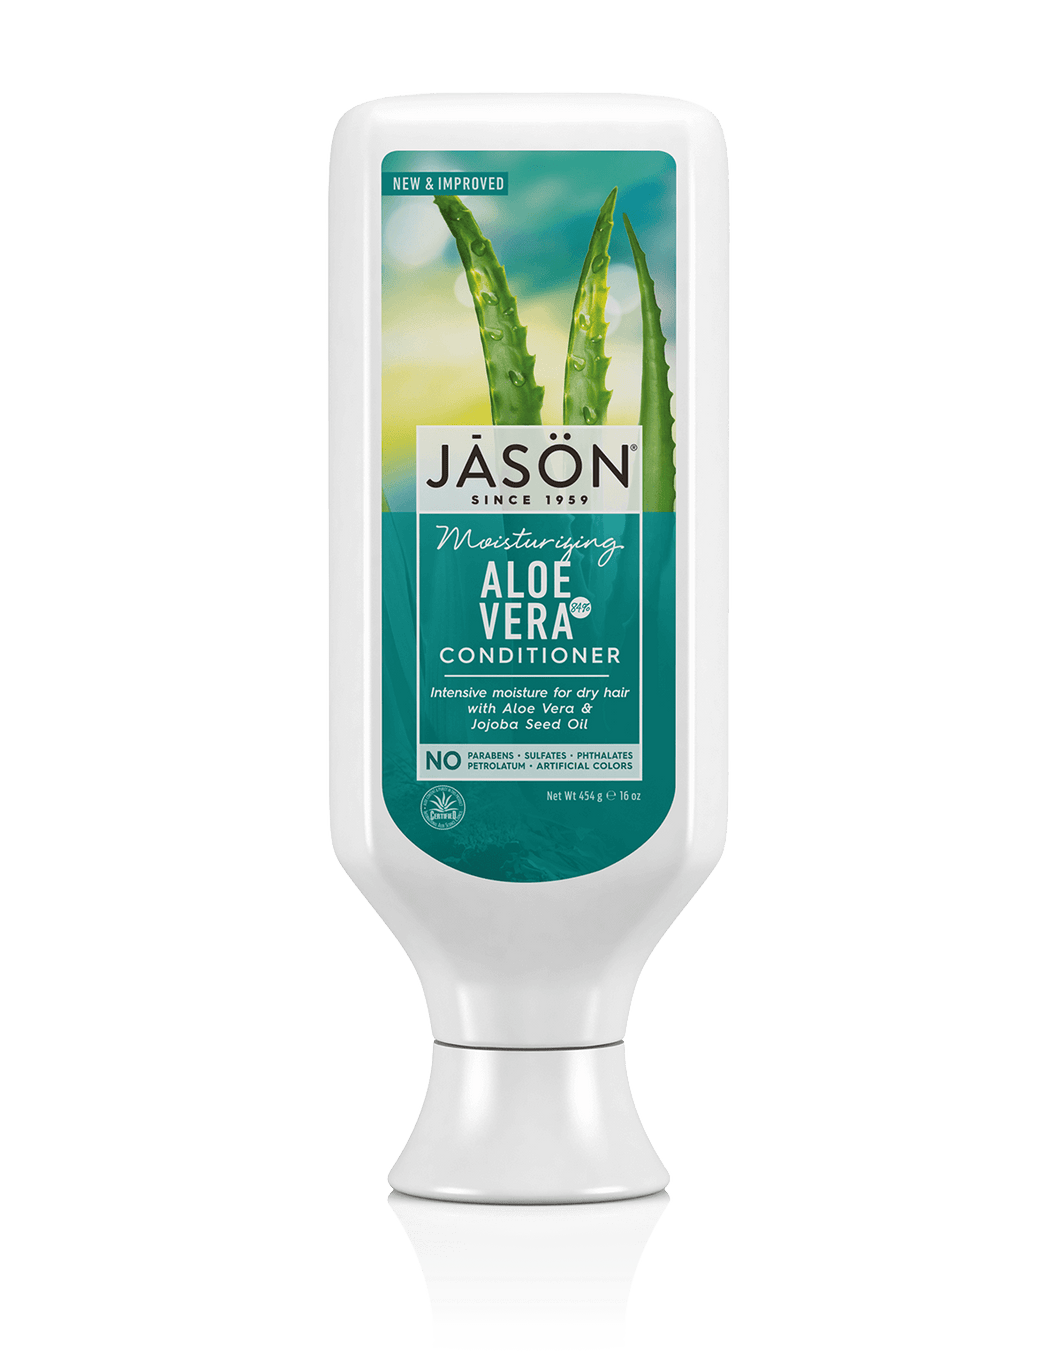 Jason Naturals Moisturizing Aloe Vera 84% Conditioner